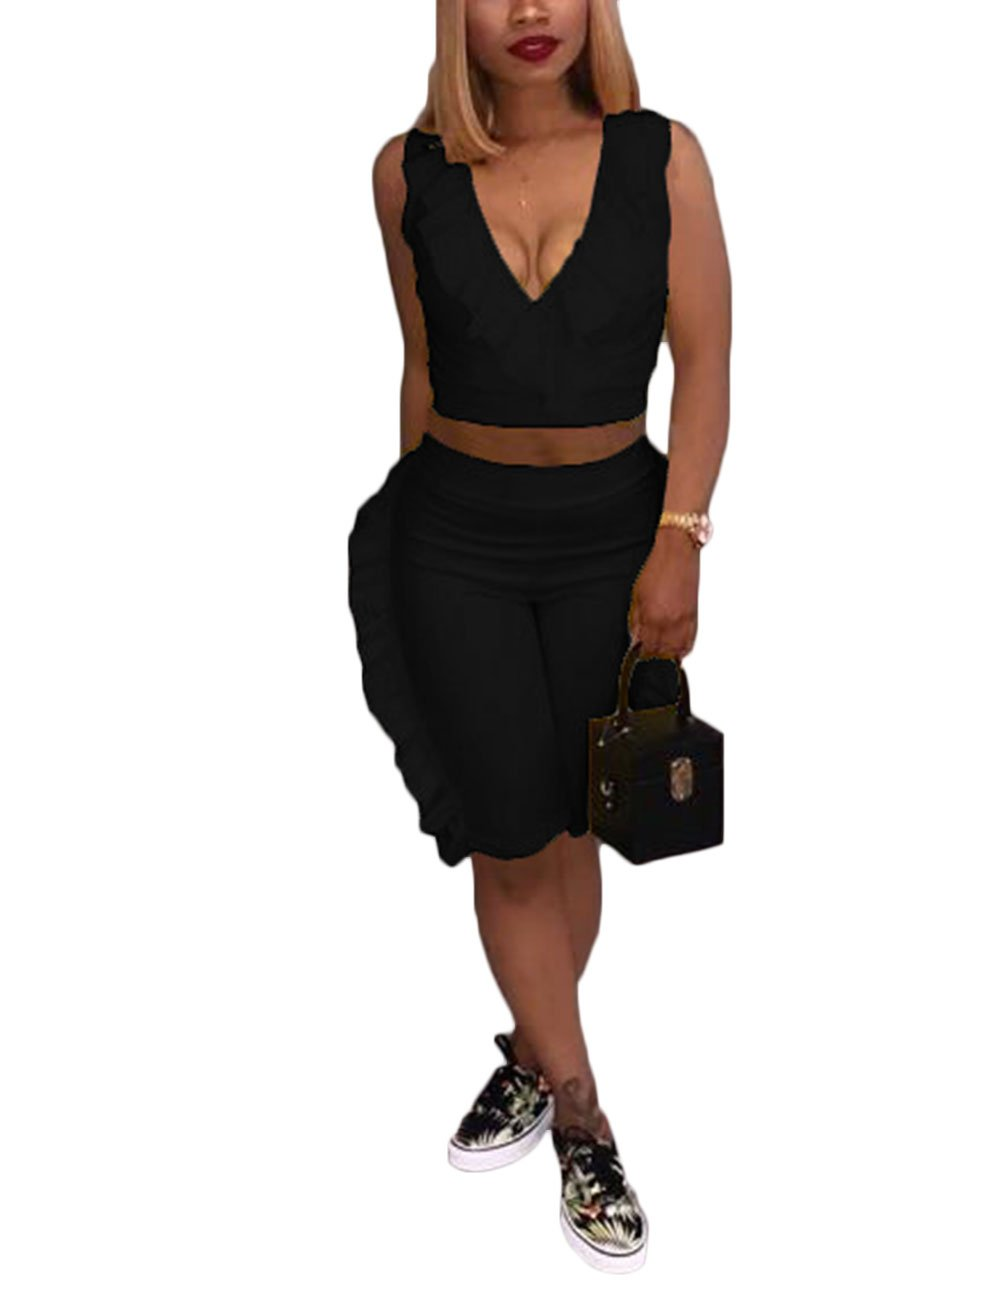 Women's Ruffle Two Pieces Outfits Sleeveless V Neck Crop Tops and Shorts Pants Set Tracksuit Black 2XL by Akmipoem (Image #1)